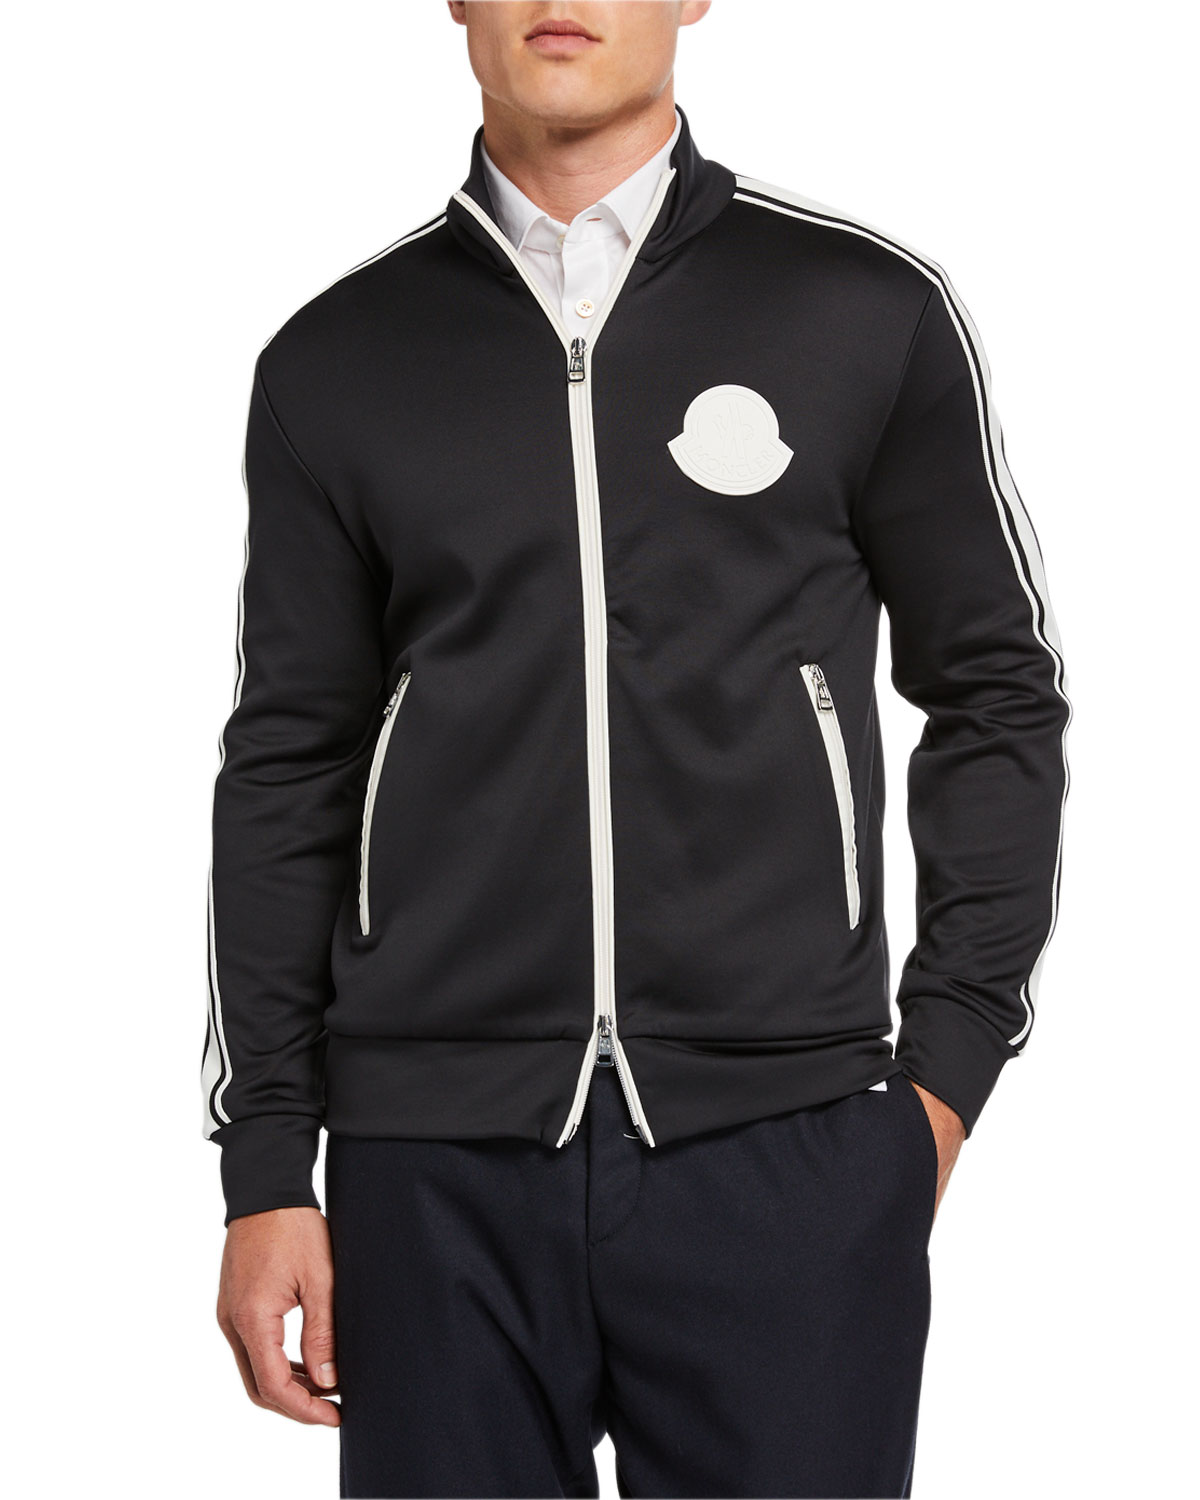 Men's Contrast Trim Zip Front Jacket by Moncler